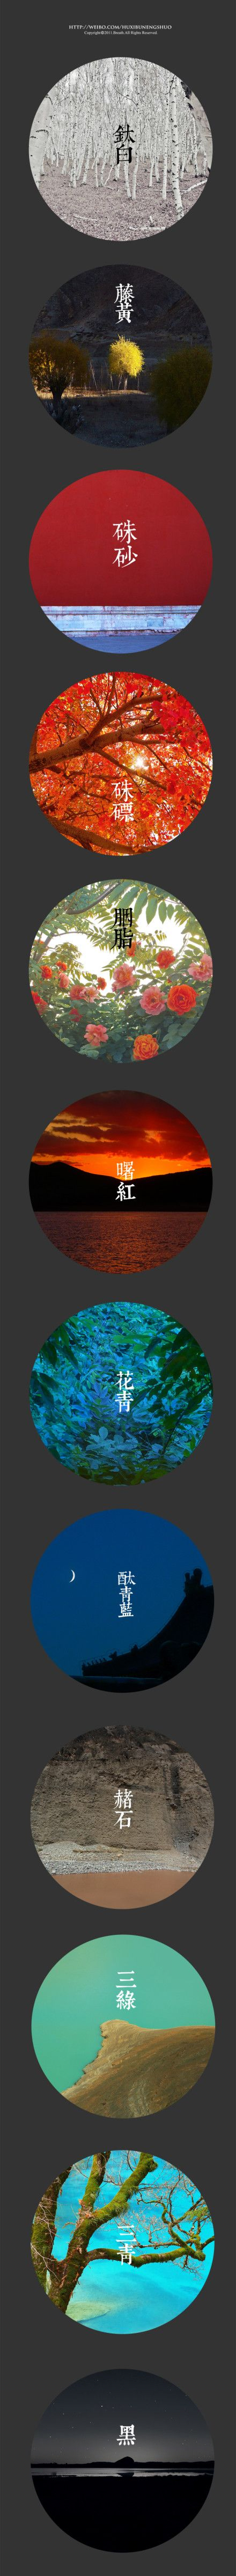 The Color Of Chinese Painting